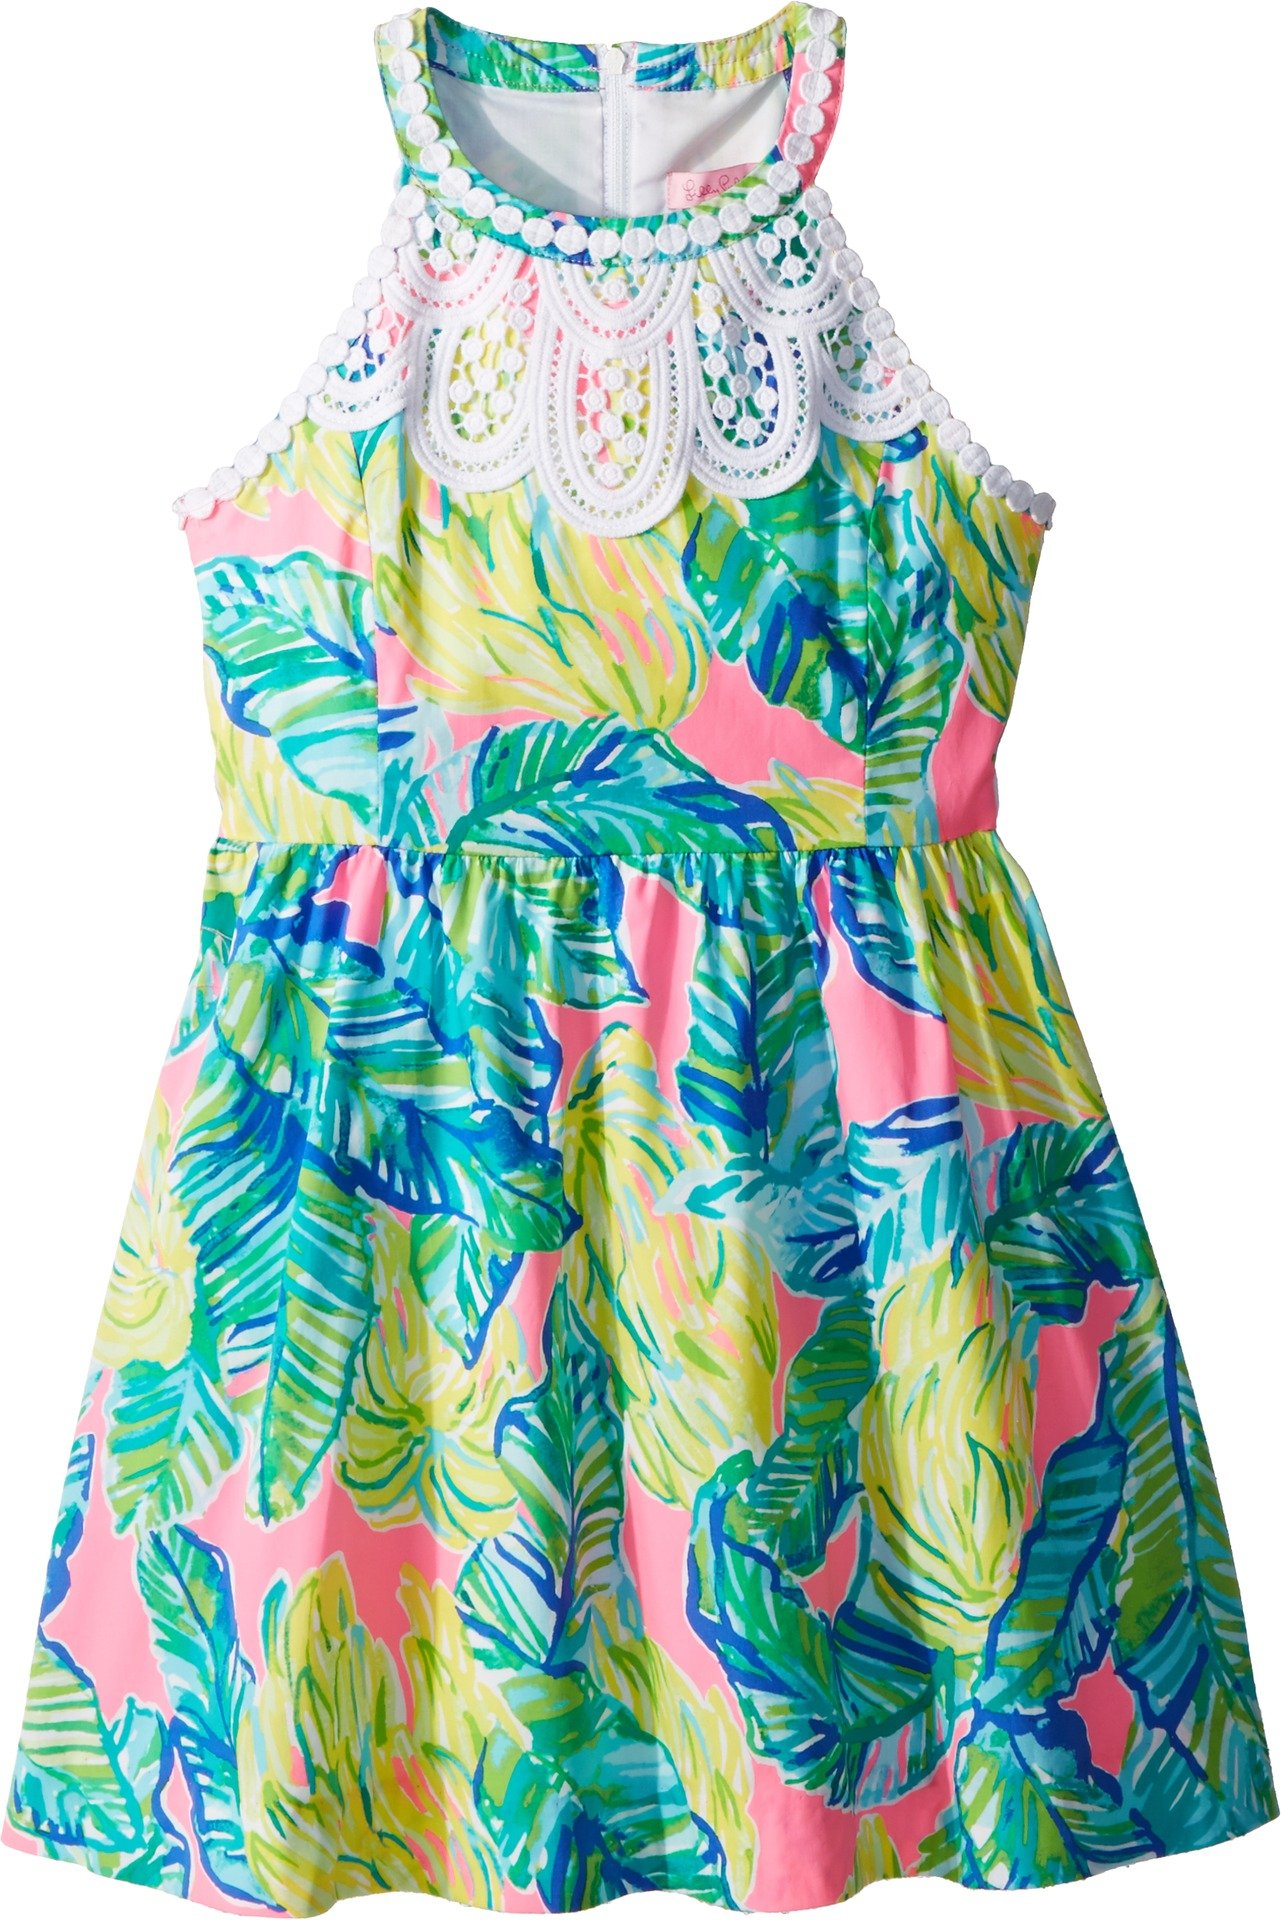 Best Deals Lilly Pulitzer Girls Size 8 Super fers